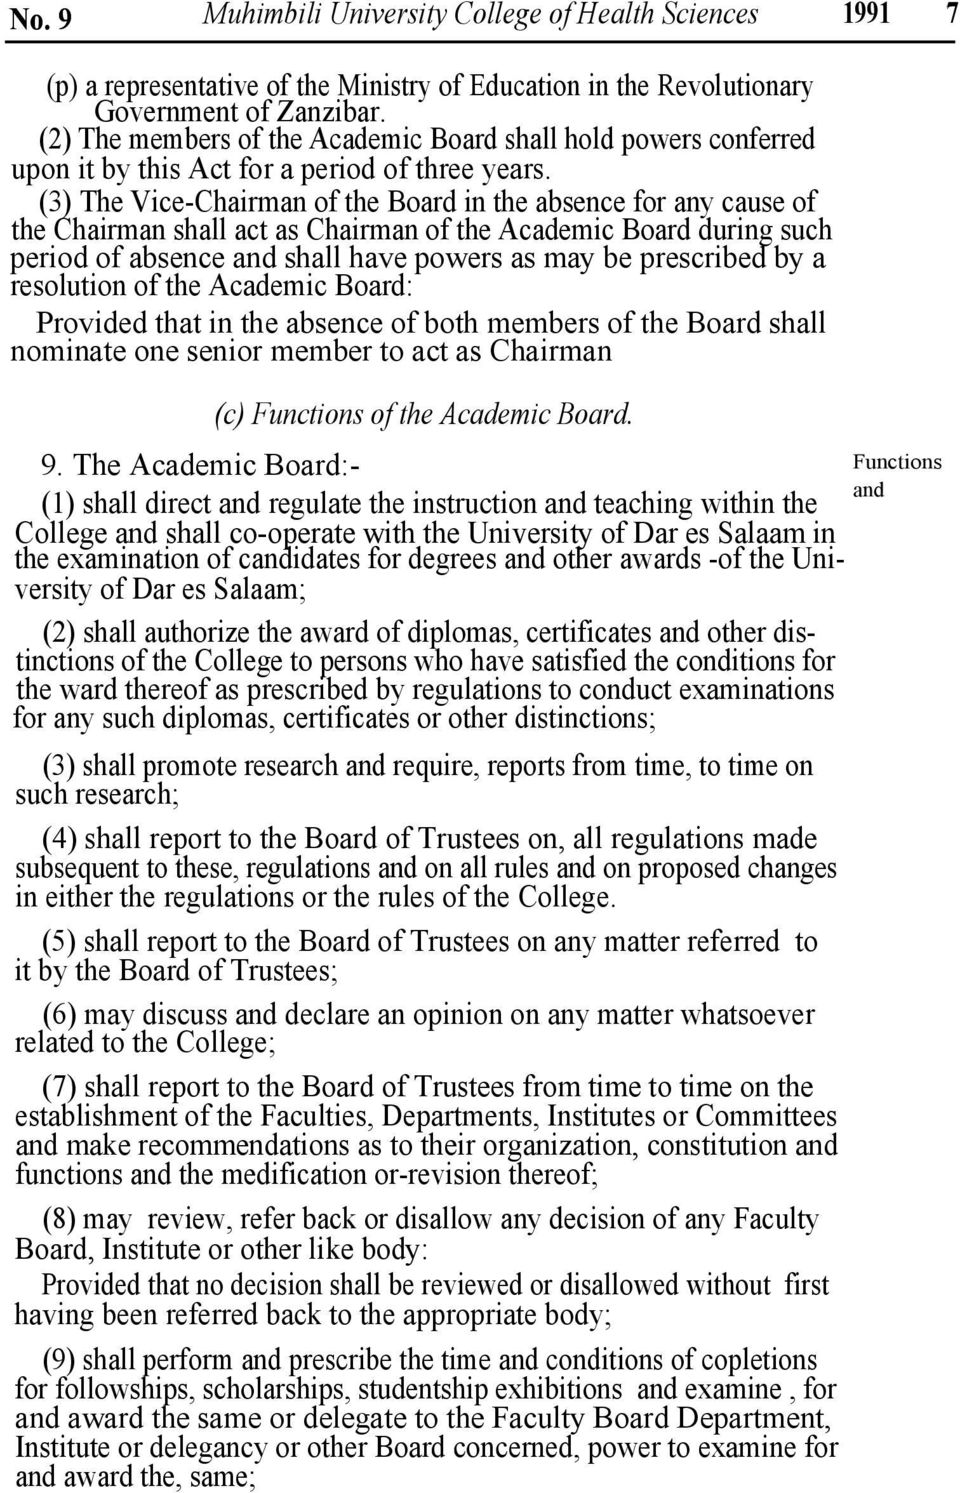 (3) The Vice-Chairman of the Board in the absence for any cause of the Chairman shall act as Chairman of the Academic Board during such period of absence and shall have powers as may be prescribed by